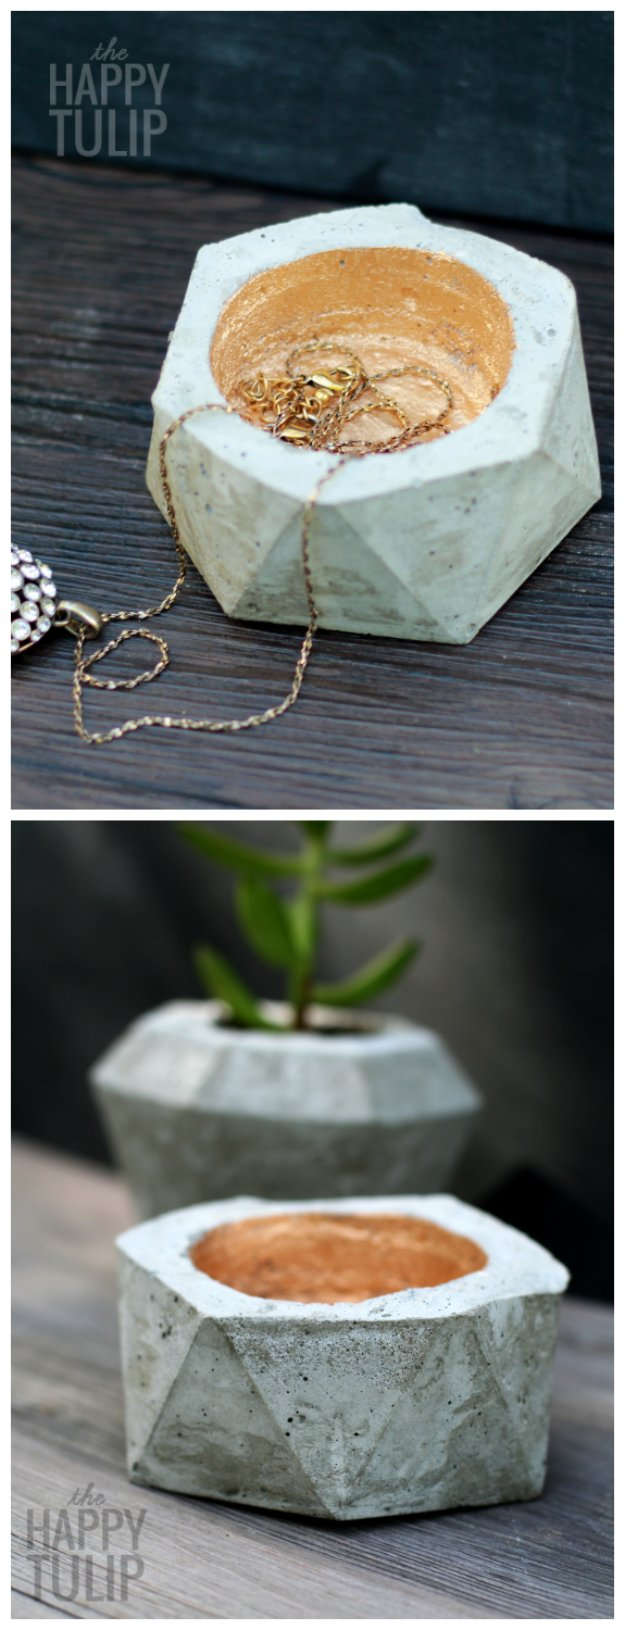 43 DIY concrete crafts - DIY Geometric Concrete Jewelry Holders- Cheap and creative projects and tutorials for countertops and ideas for floors, patio and porch decor, tables, planters, vases, frames, jewelry holder, home decor and DIY gifts. http://diyjoy.com/diy-concrete-crafts-projects-